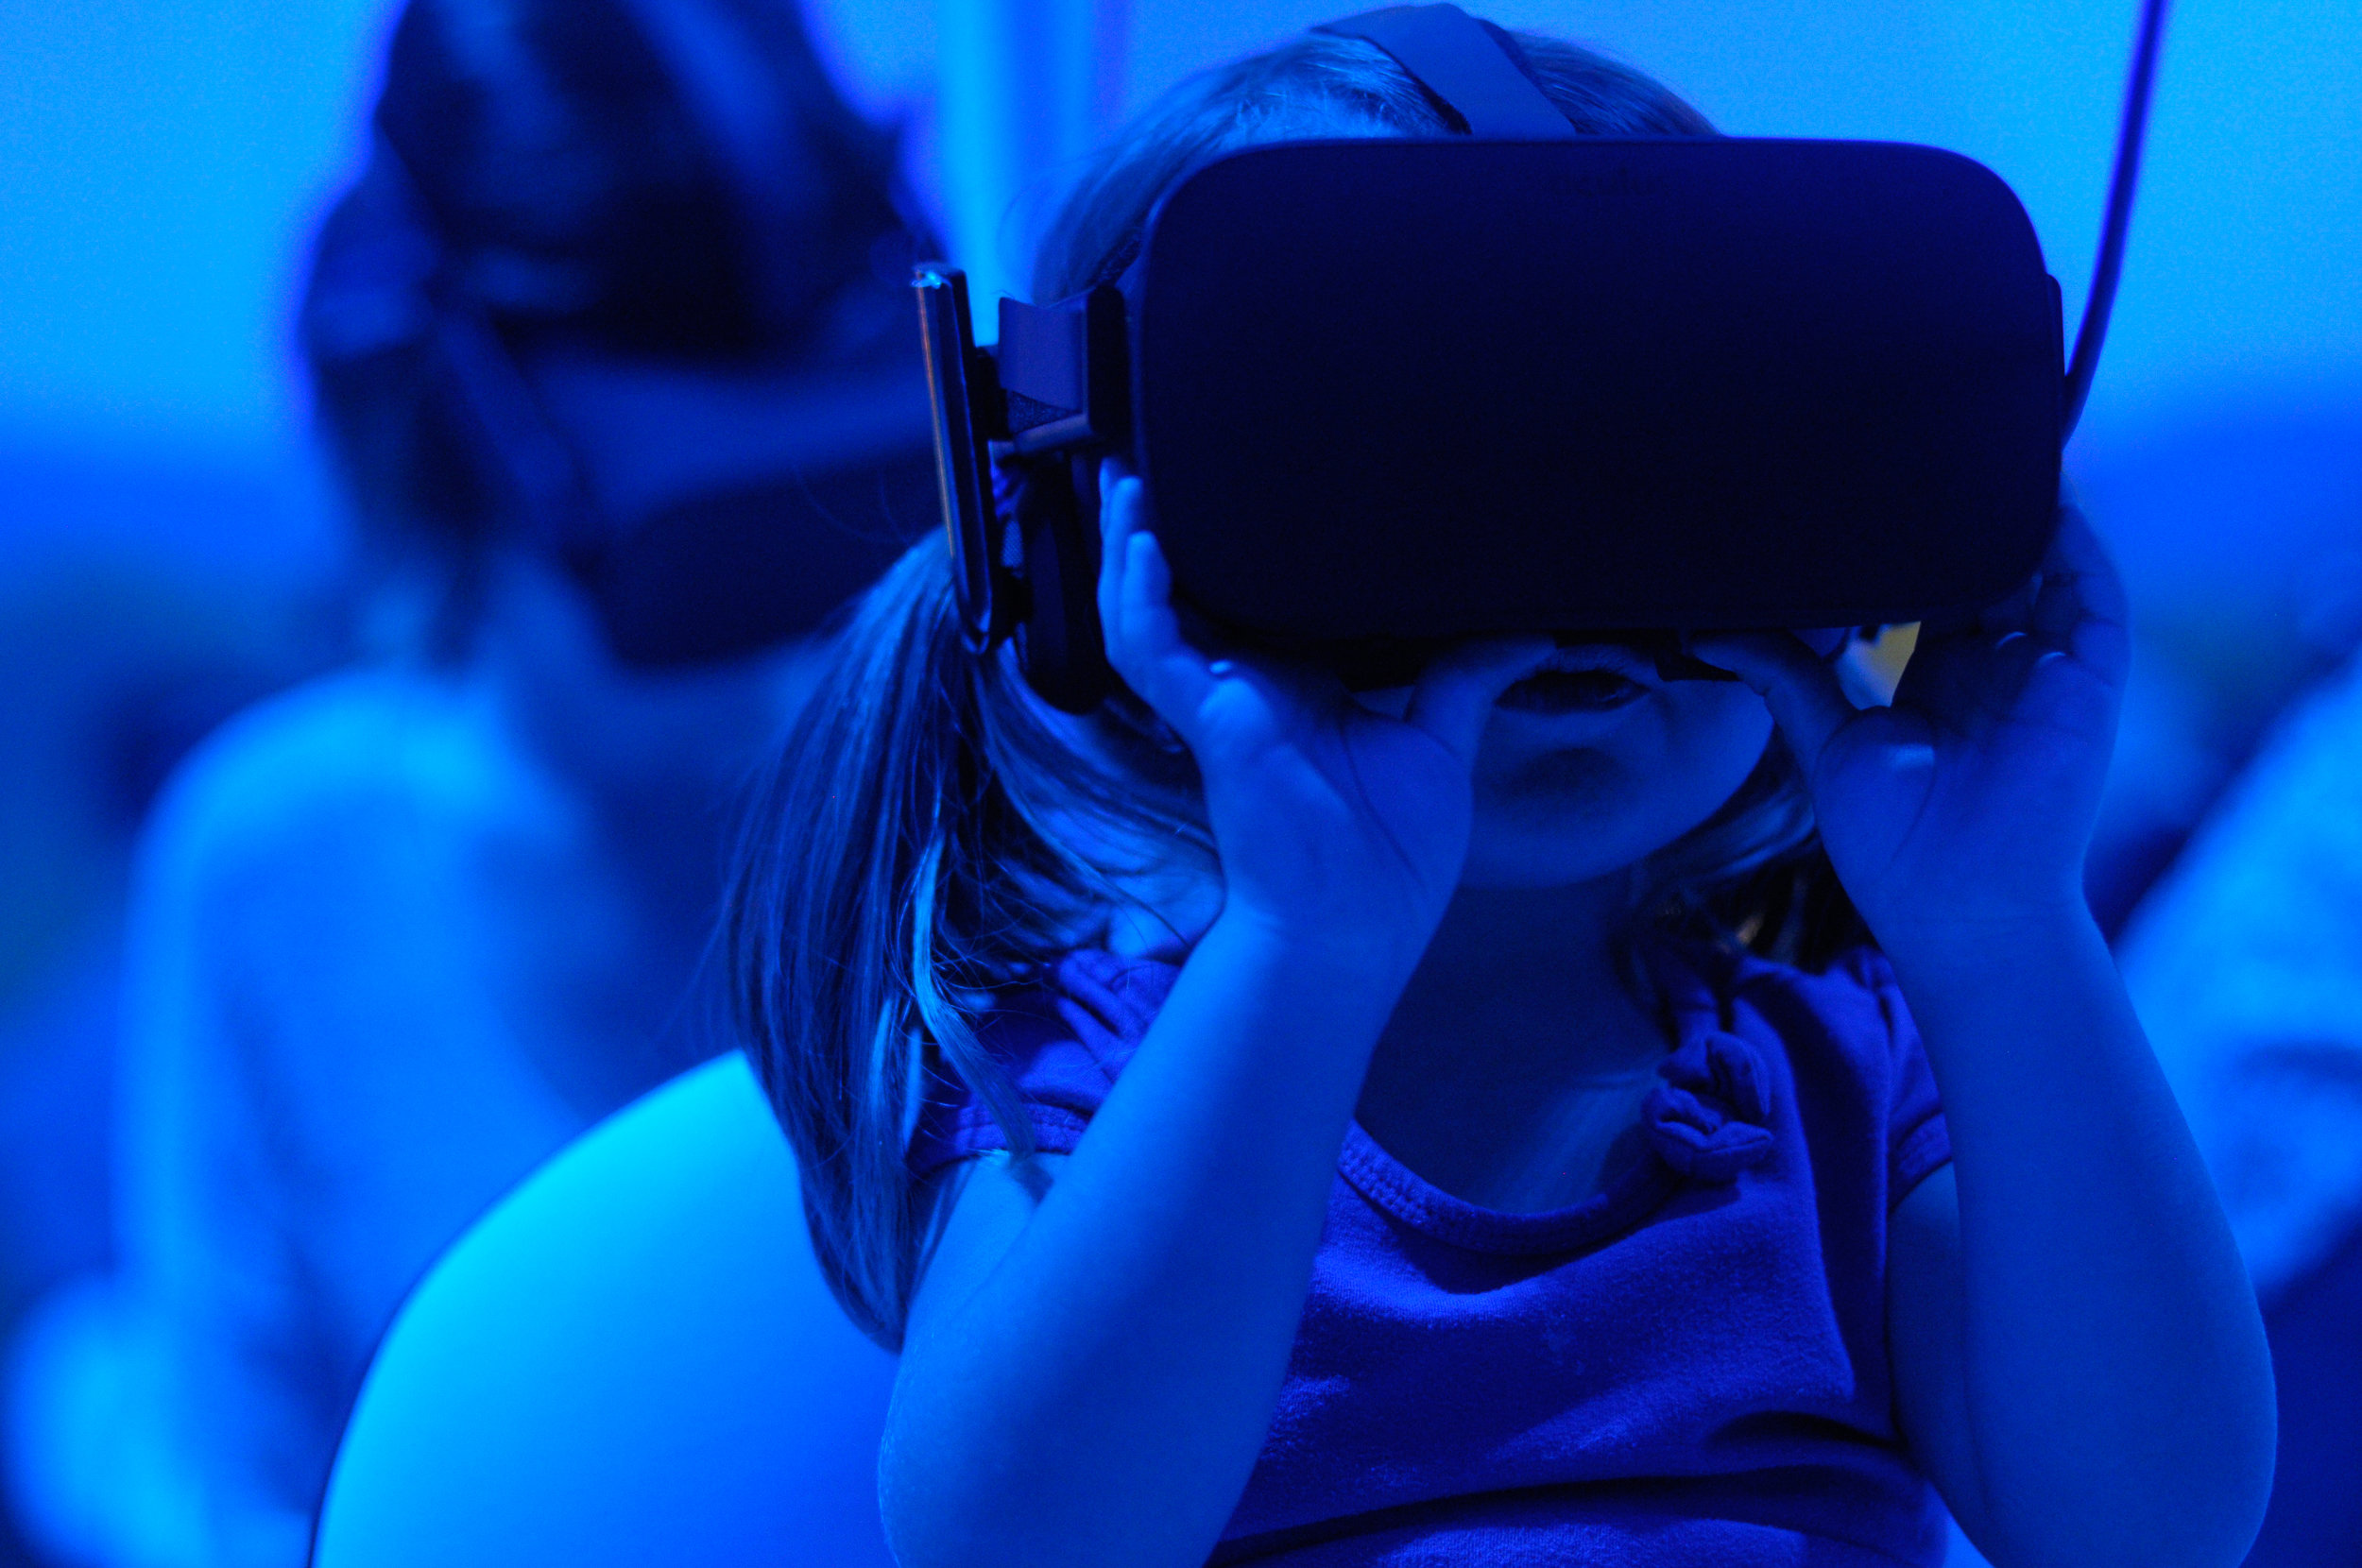 5- 7PMINTERACTIVE PROJECTS - VR / AR / INSTALLATIONHighlighting Interactive Projects at the multiple locations*All interactive projects will be available all 3-days except for during all SCREENINGS